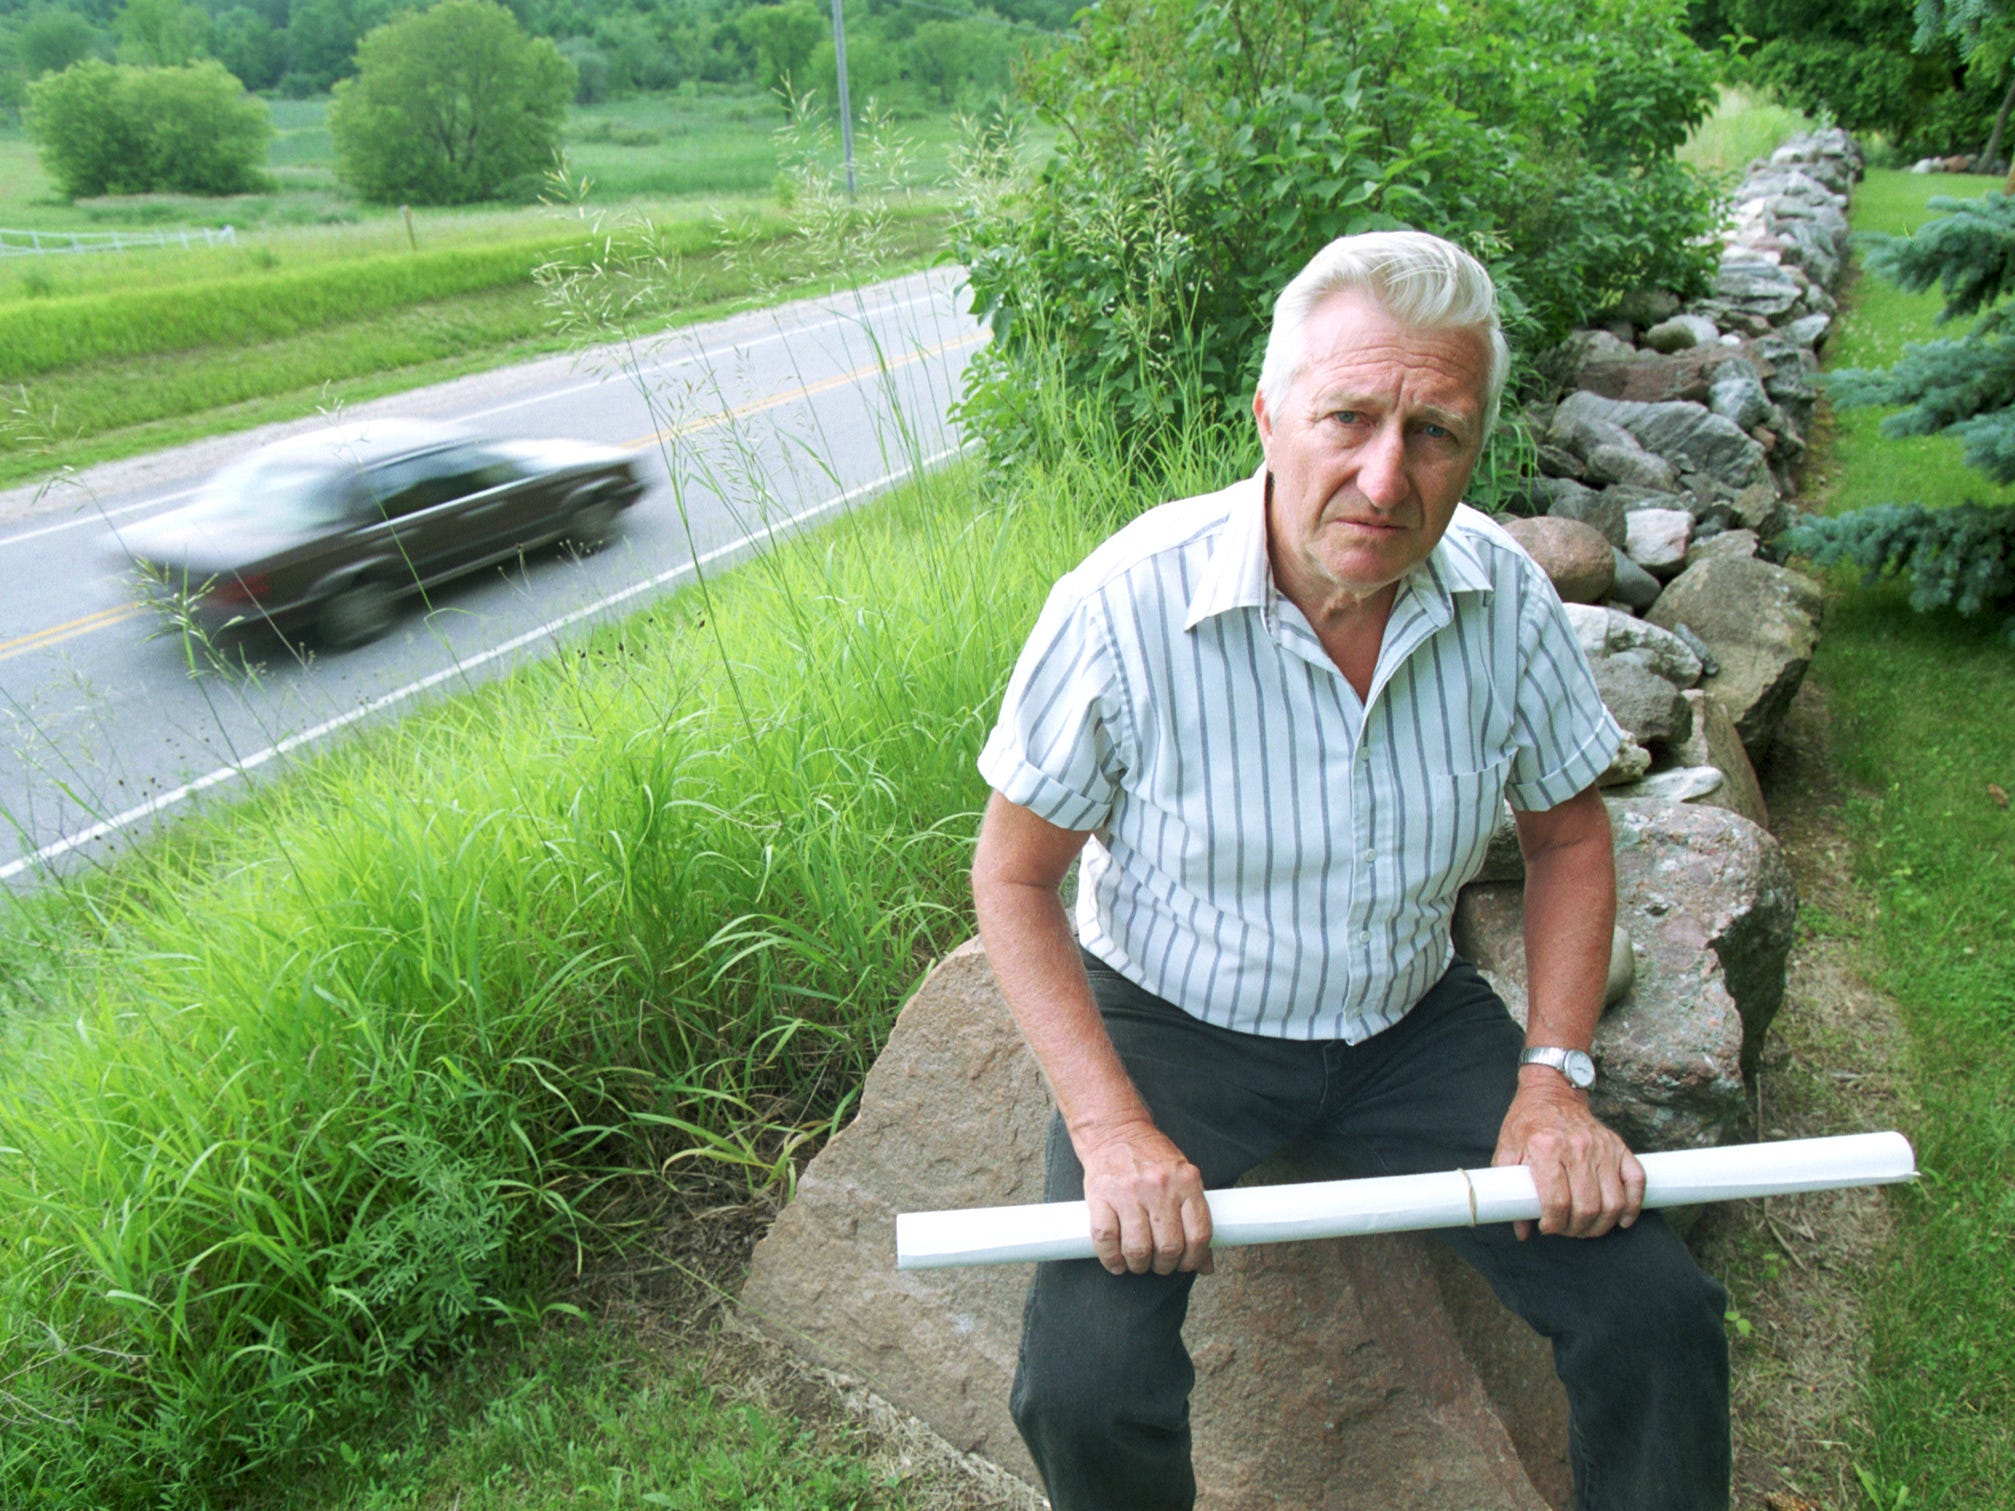 in 2001 recallled David Steffes the years of memories from times spent on his homestead property with his family on County Highway C near the intersection of Highway 23 just west of Plymouth. Memories such as the stone fence built over a summer by his son with rocks and boulders collected in nearby fields. The plan held in Steffes' hands lays out the state's plan to demolish his home, barns, the many trees planted as seedlings and of course the stone fence, to make room for the four lane expansion of Highway 23 and revamping of the Highway C intersection.  Press photo by Jeffrey Machtig